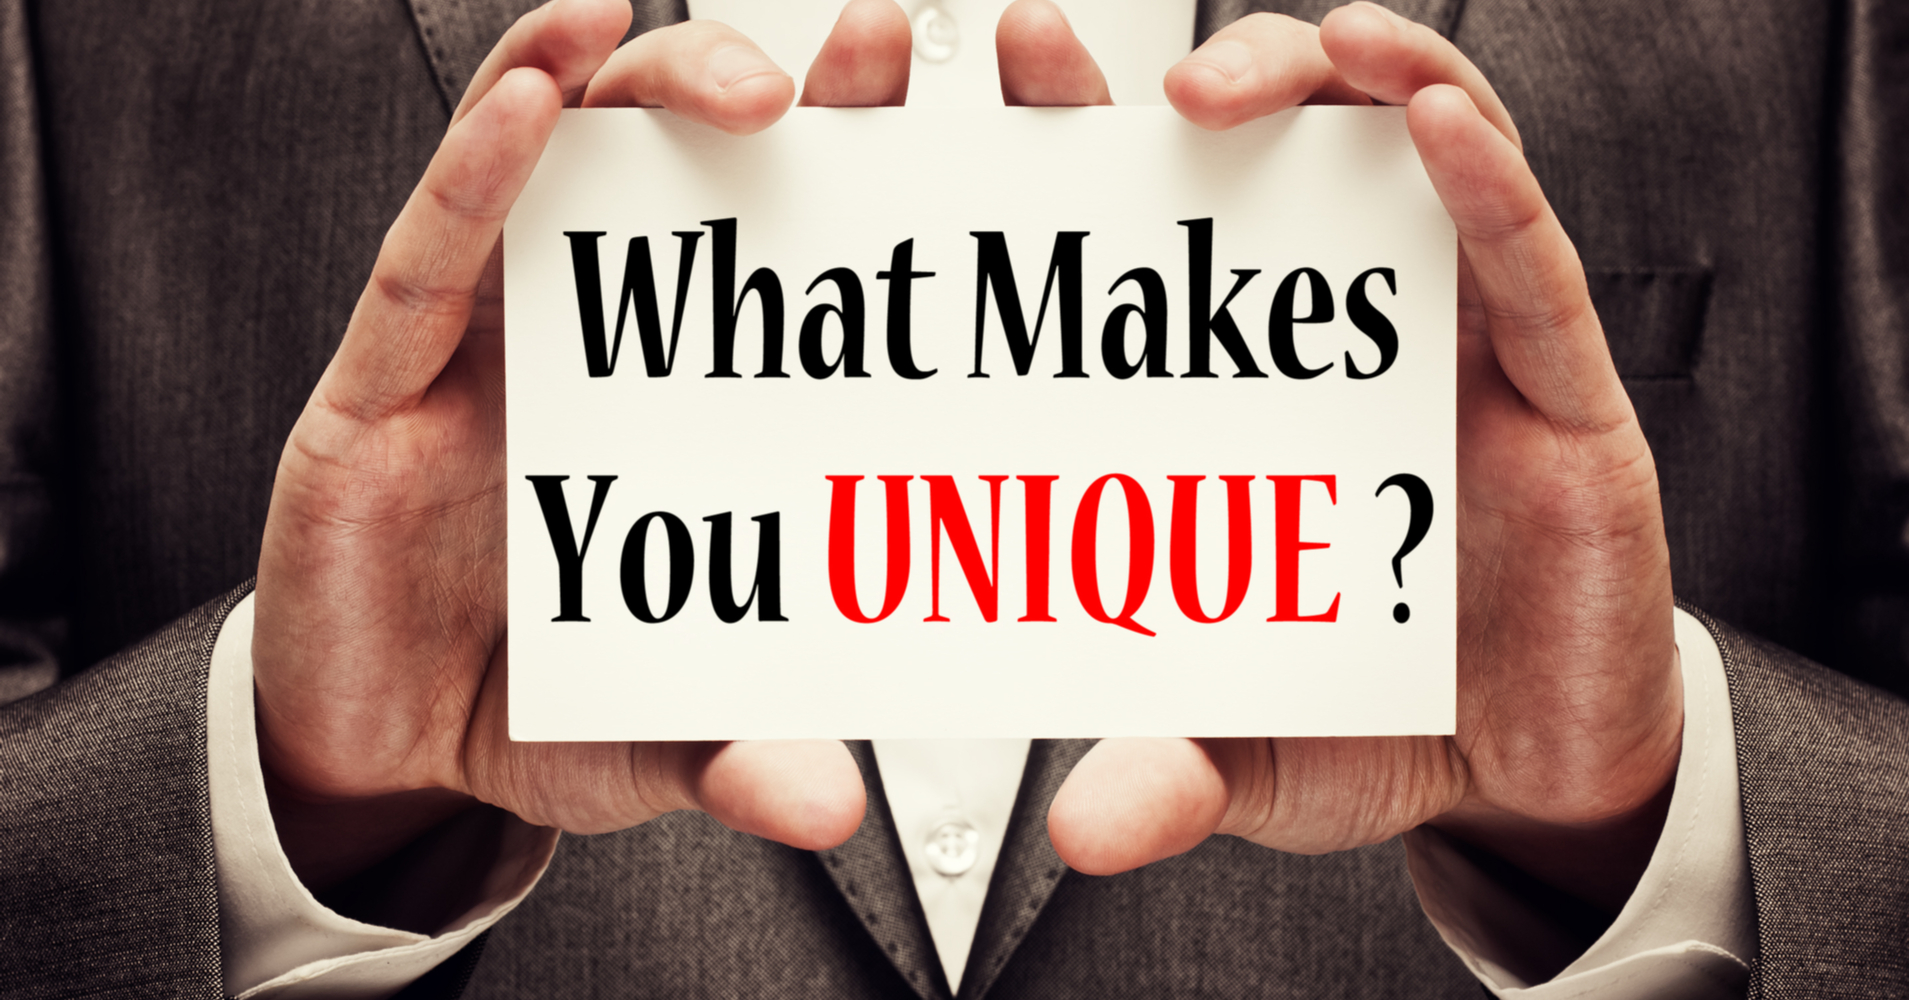 What Makes Me Unique? - Quiz - Quizony.com